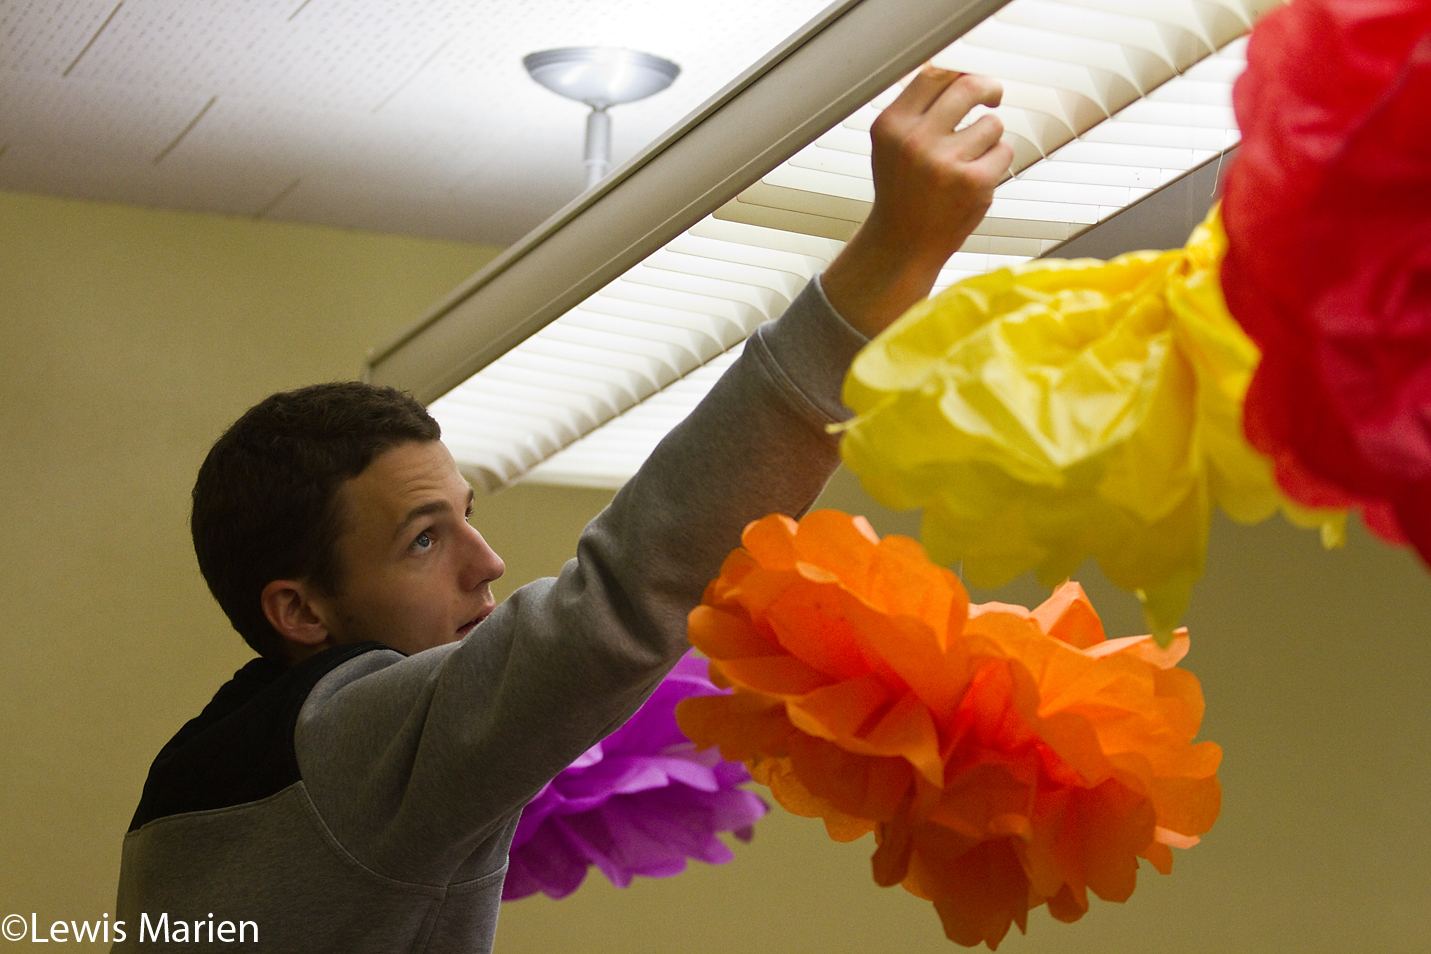 Galesburg High School student Eric Thompson repositions hanging paper flowers in his Housing and Interior Design class Oct. 14. Students in the class redesigned their teacher's room over a period of time.